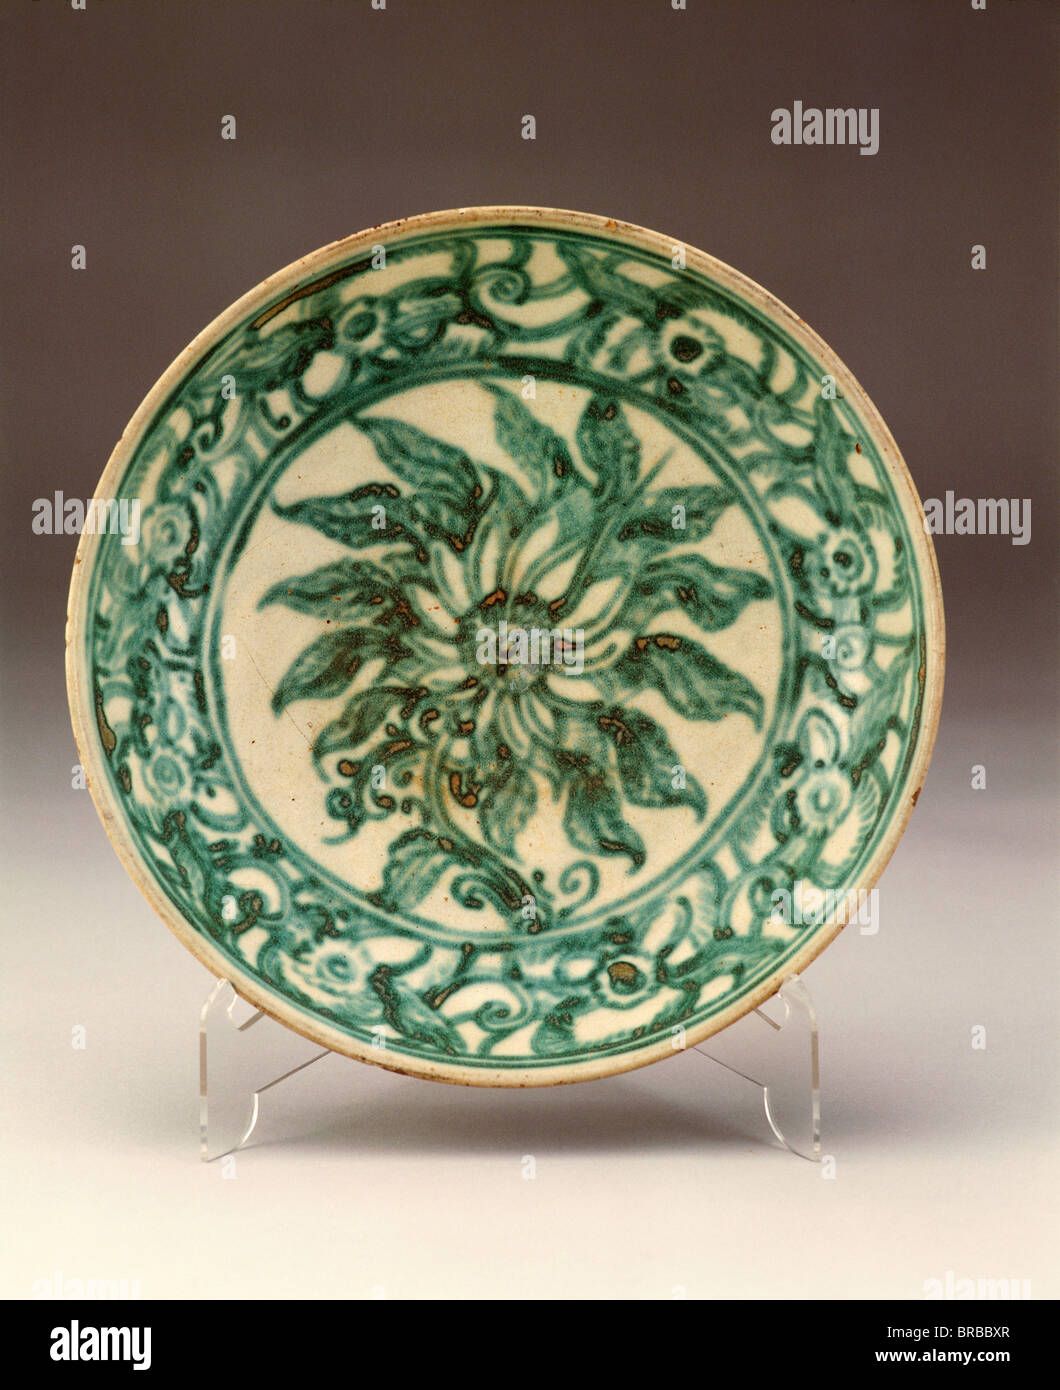 Burmese glazed ceramic plate dating from the 15th or 16th century from the Tak excavations, Myanmar (Burma) - Stock Image